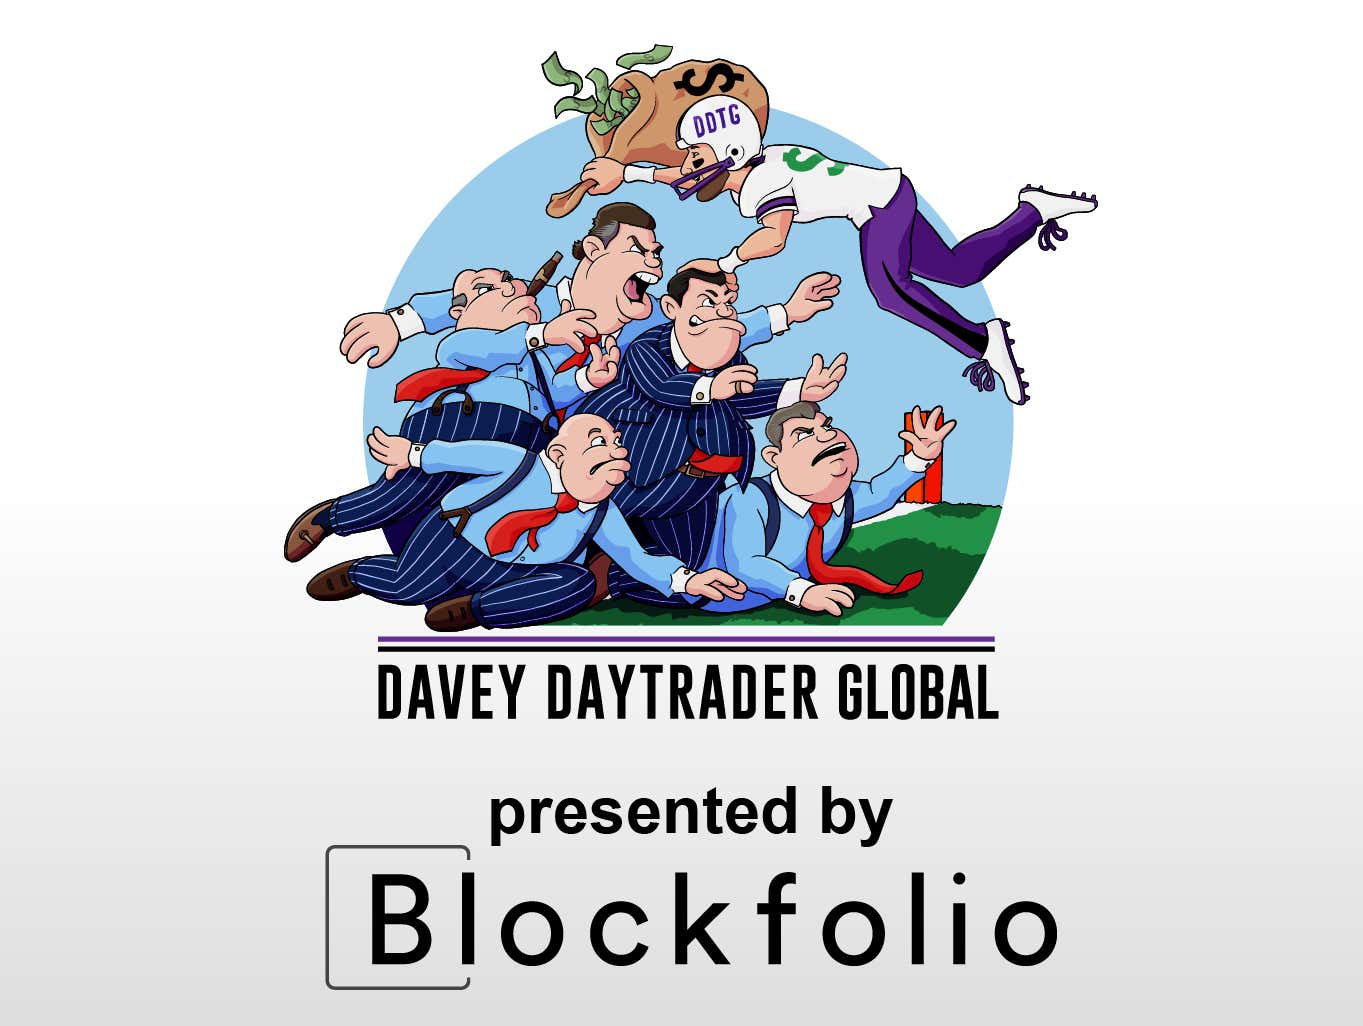 Davey Day Trader presented by Blockfolio - May 6, 2021